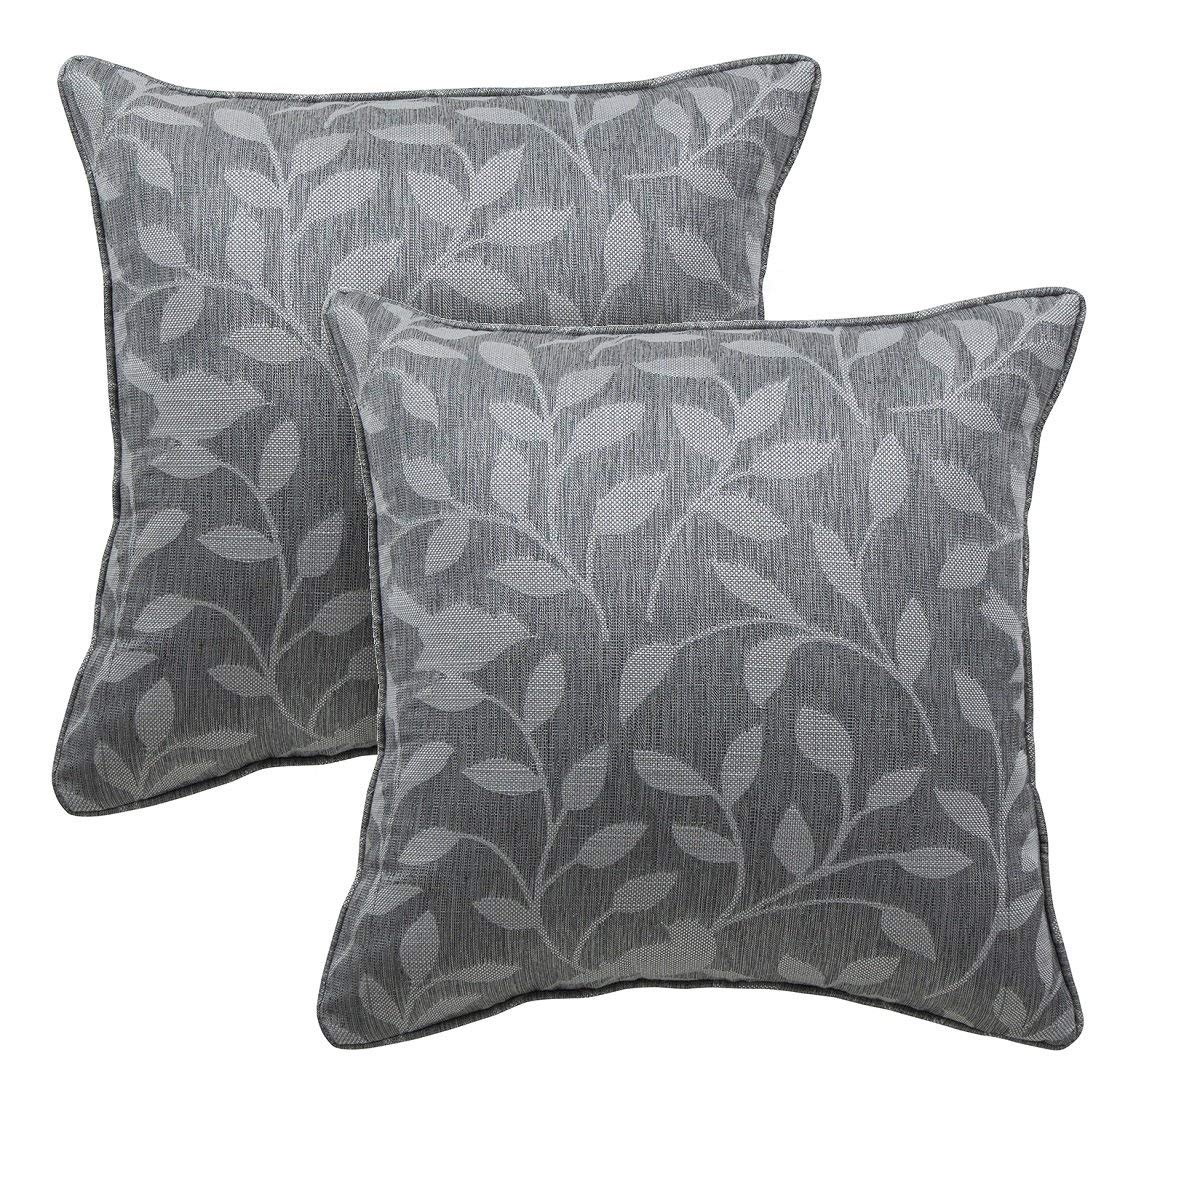 Brilliant Alexandra Cole Floral Leaf Lumbar Throw Pillows Covers 18X18 Square Decorative Pillowcases For Sofa Bed Set Of 2 Dark Grey Pabps2019 Chair Design Images Pabps2019Com